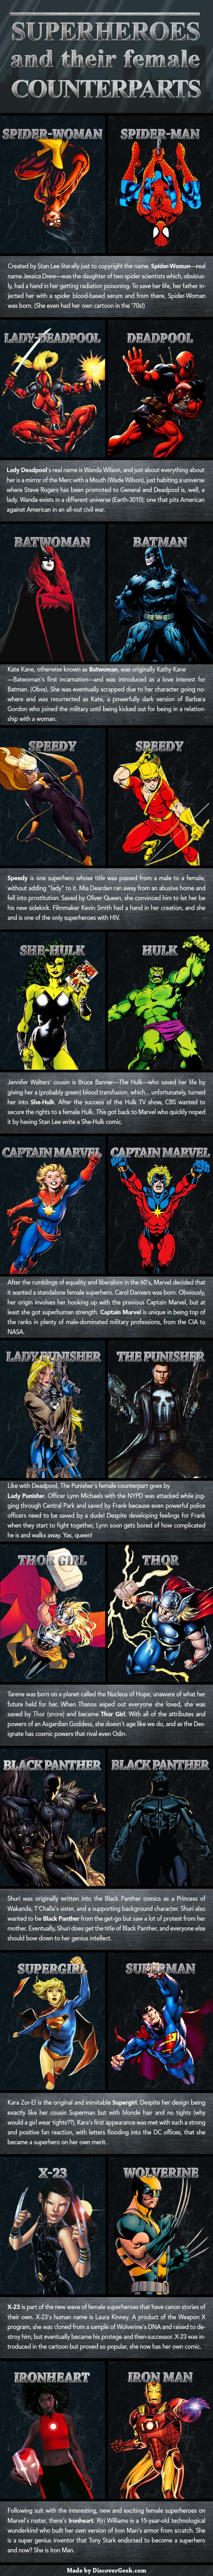 female-superheroes-done-with-text-copy.jpg